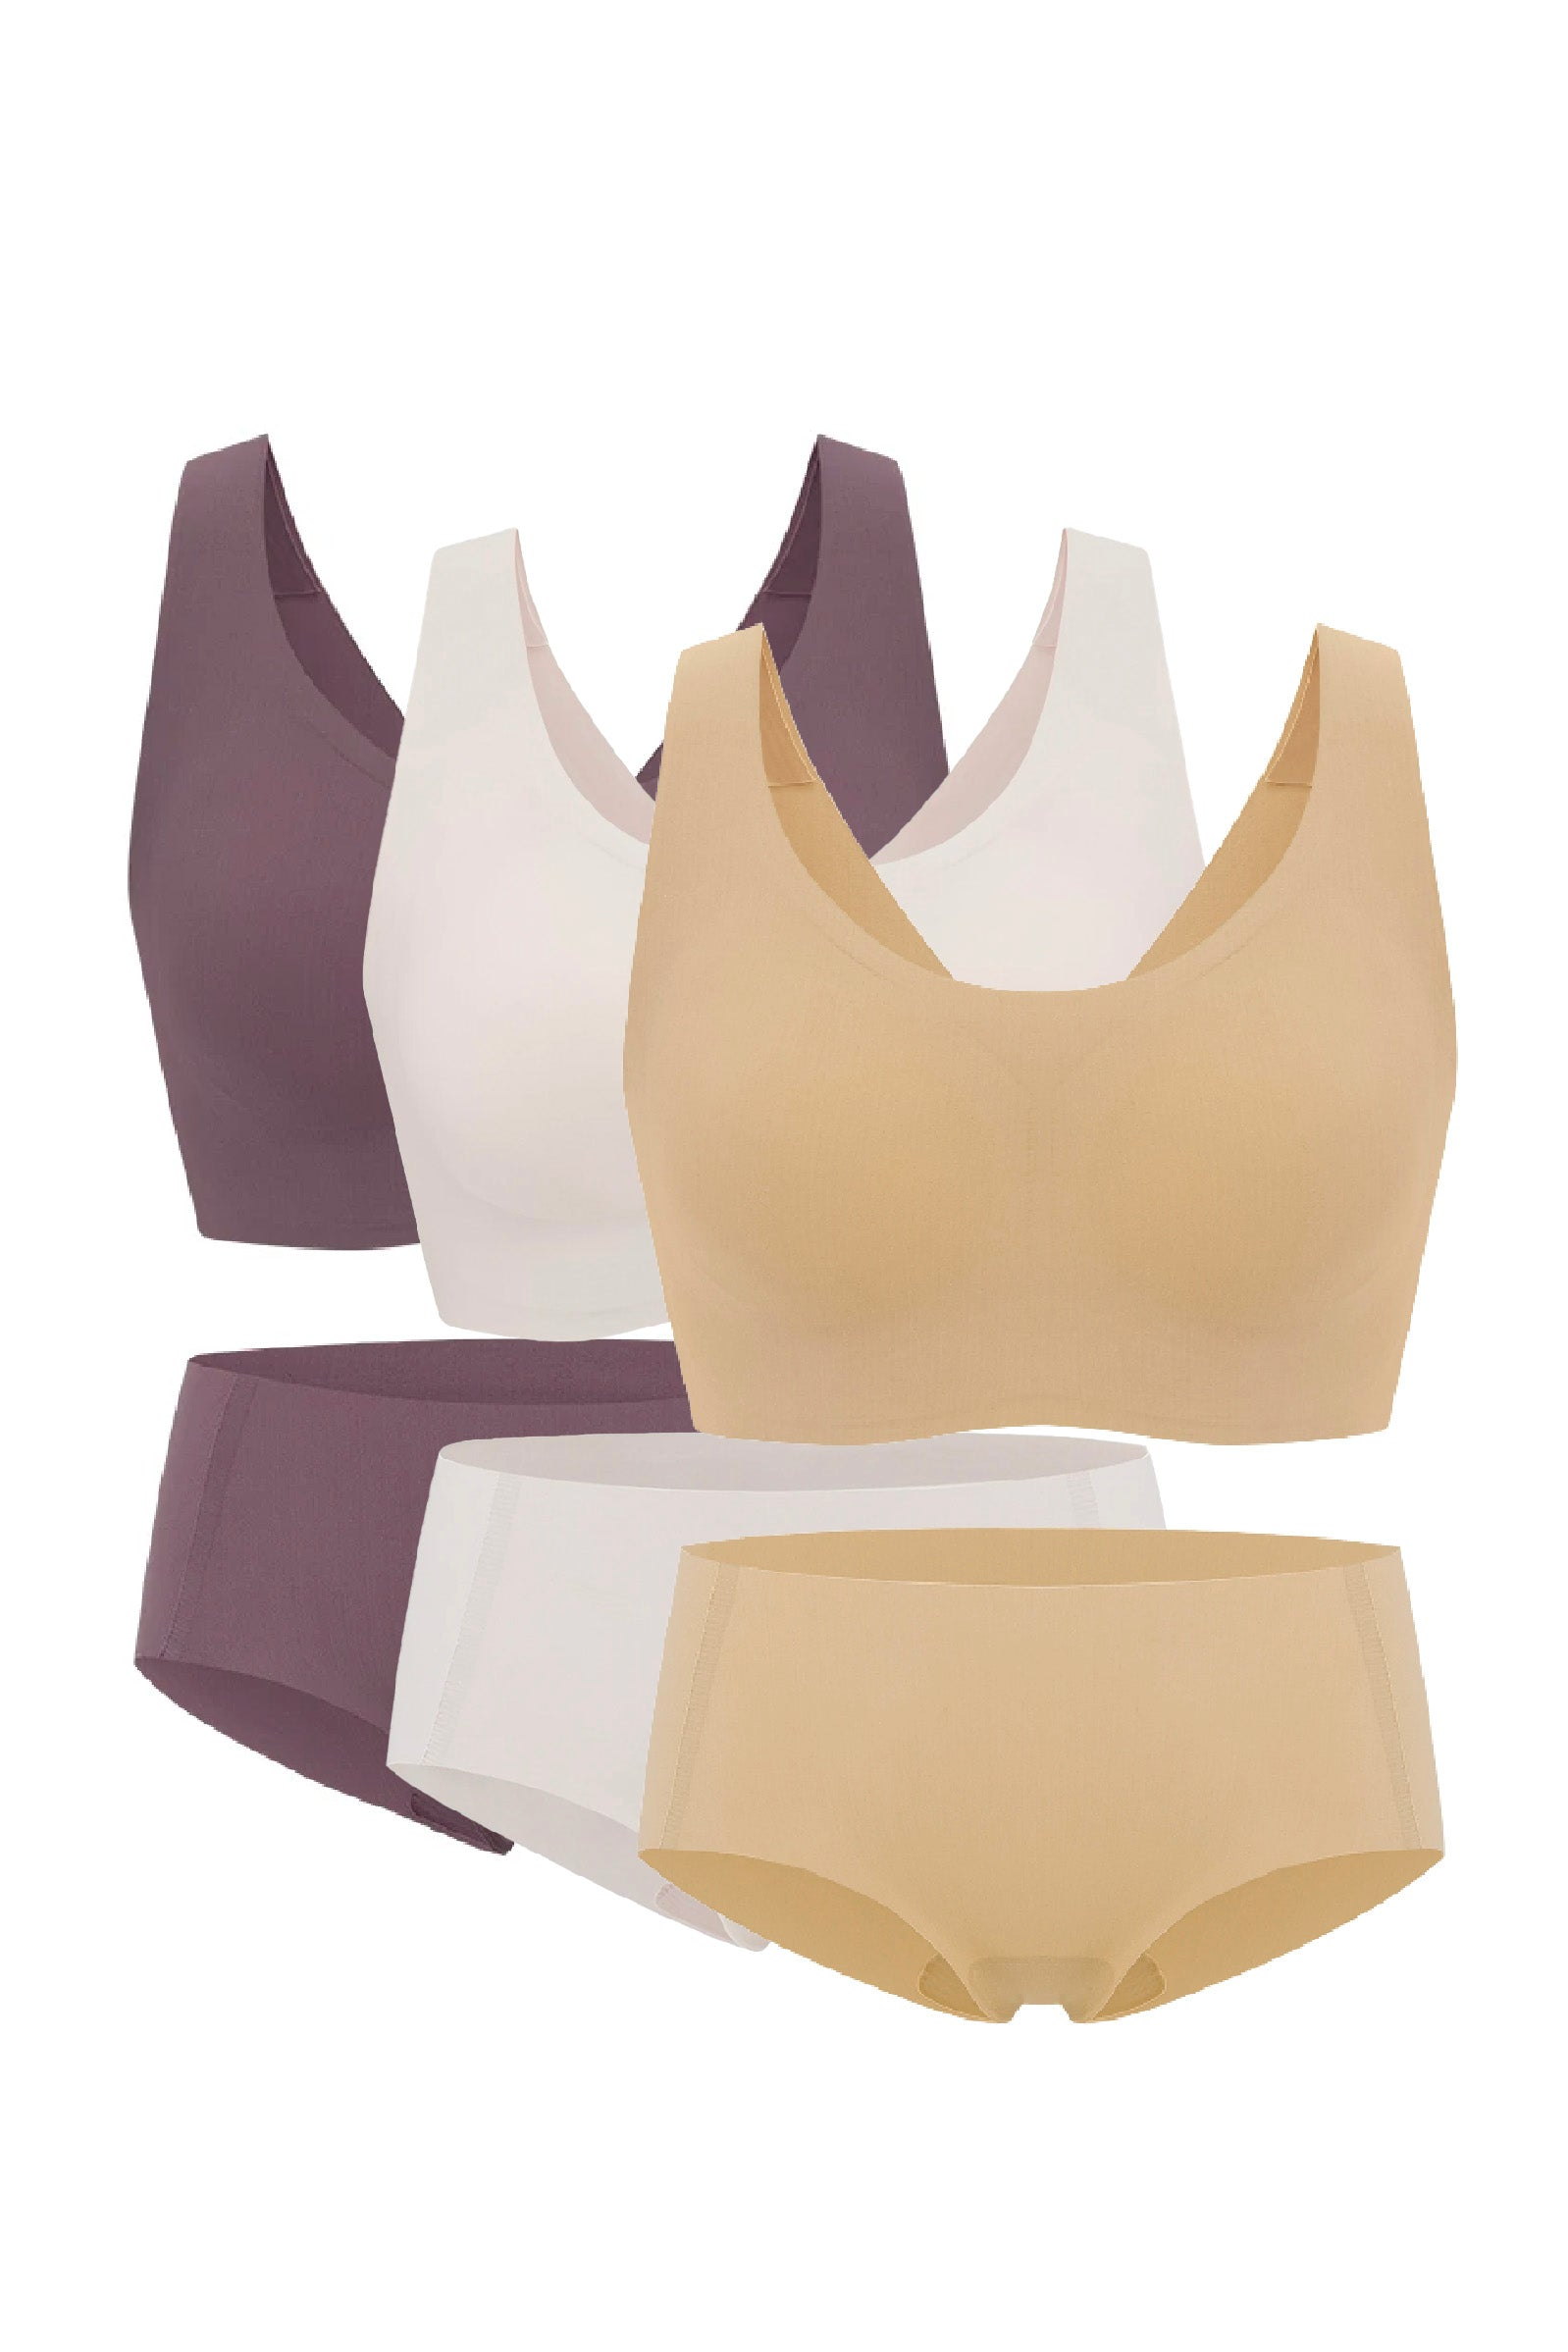 NEIWAI's Barely Zero bra and brief set holiday special pack in purple dove, soft pink, and nude..